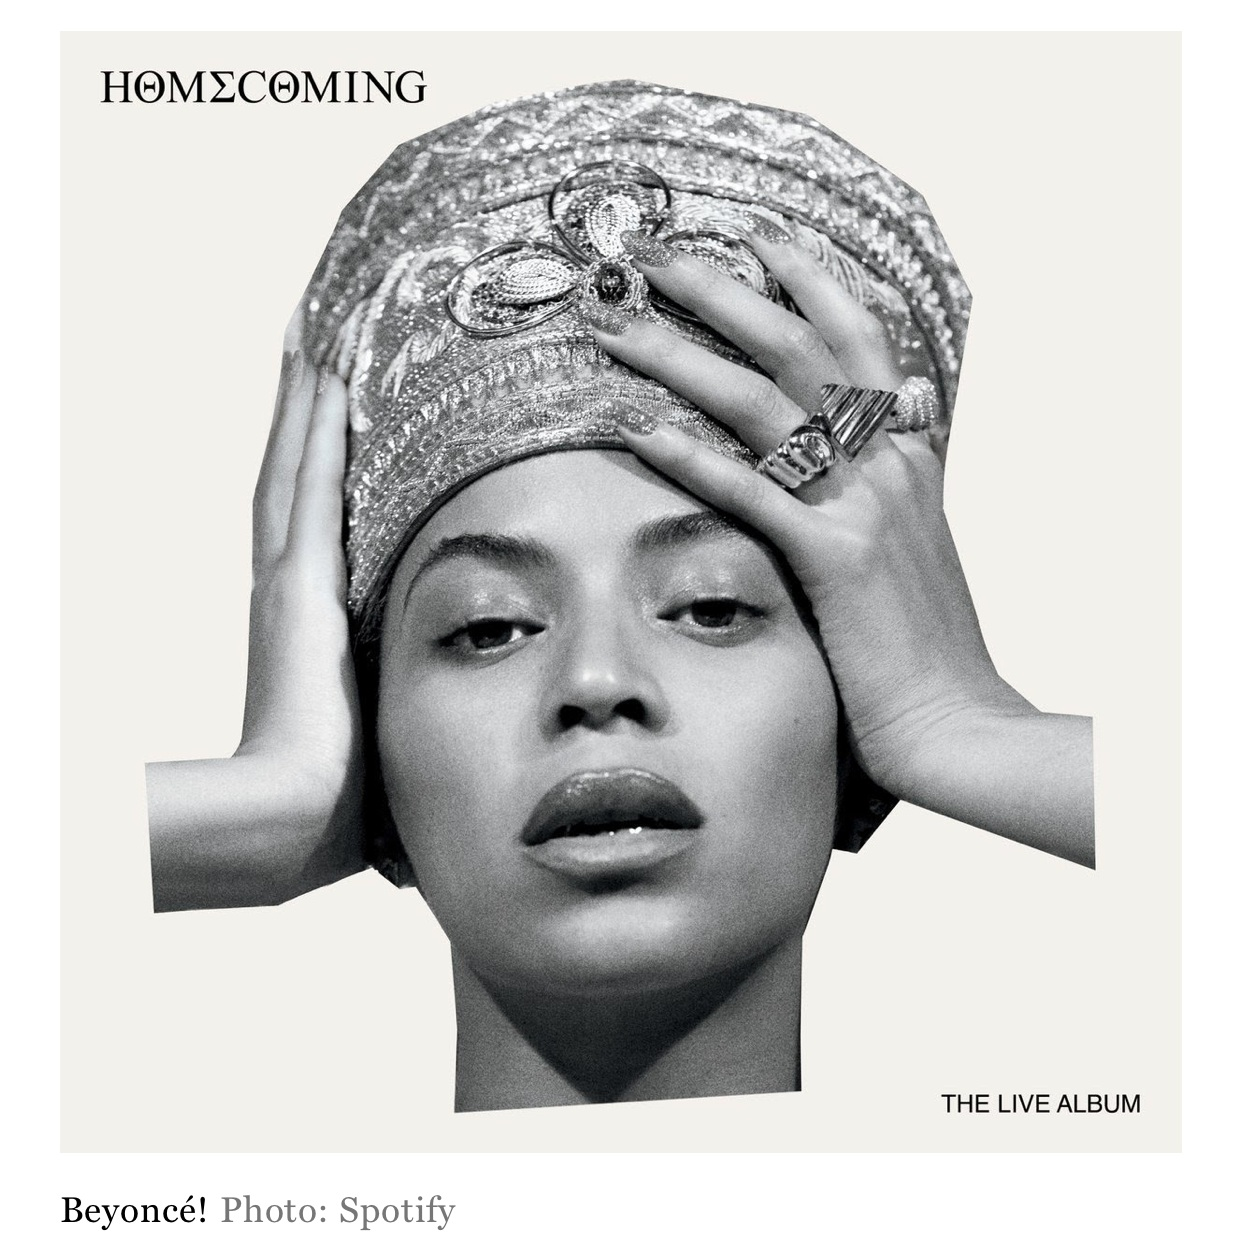 - WHAT! Beyoncé dropped a surprise live album along with her new Netflix documentary this week! The album is full of favorites with new twists. It'll be on repeat for the foreseeable future.Find it here.